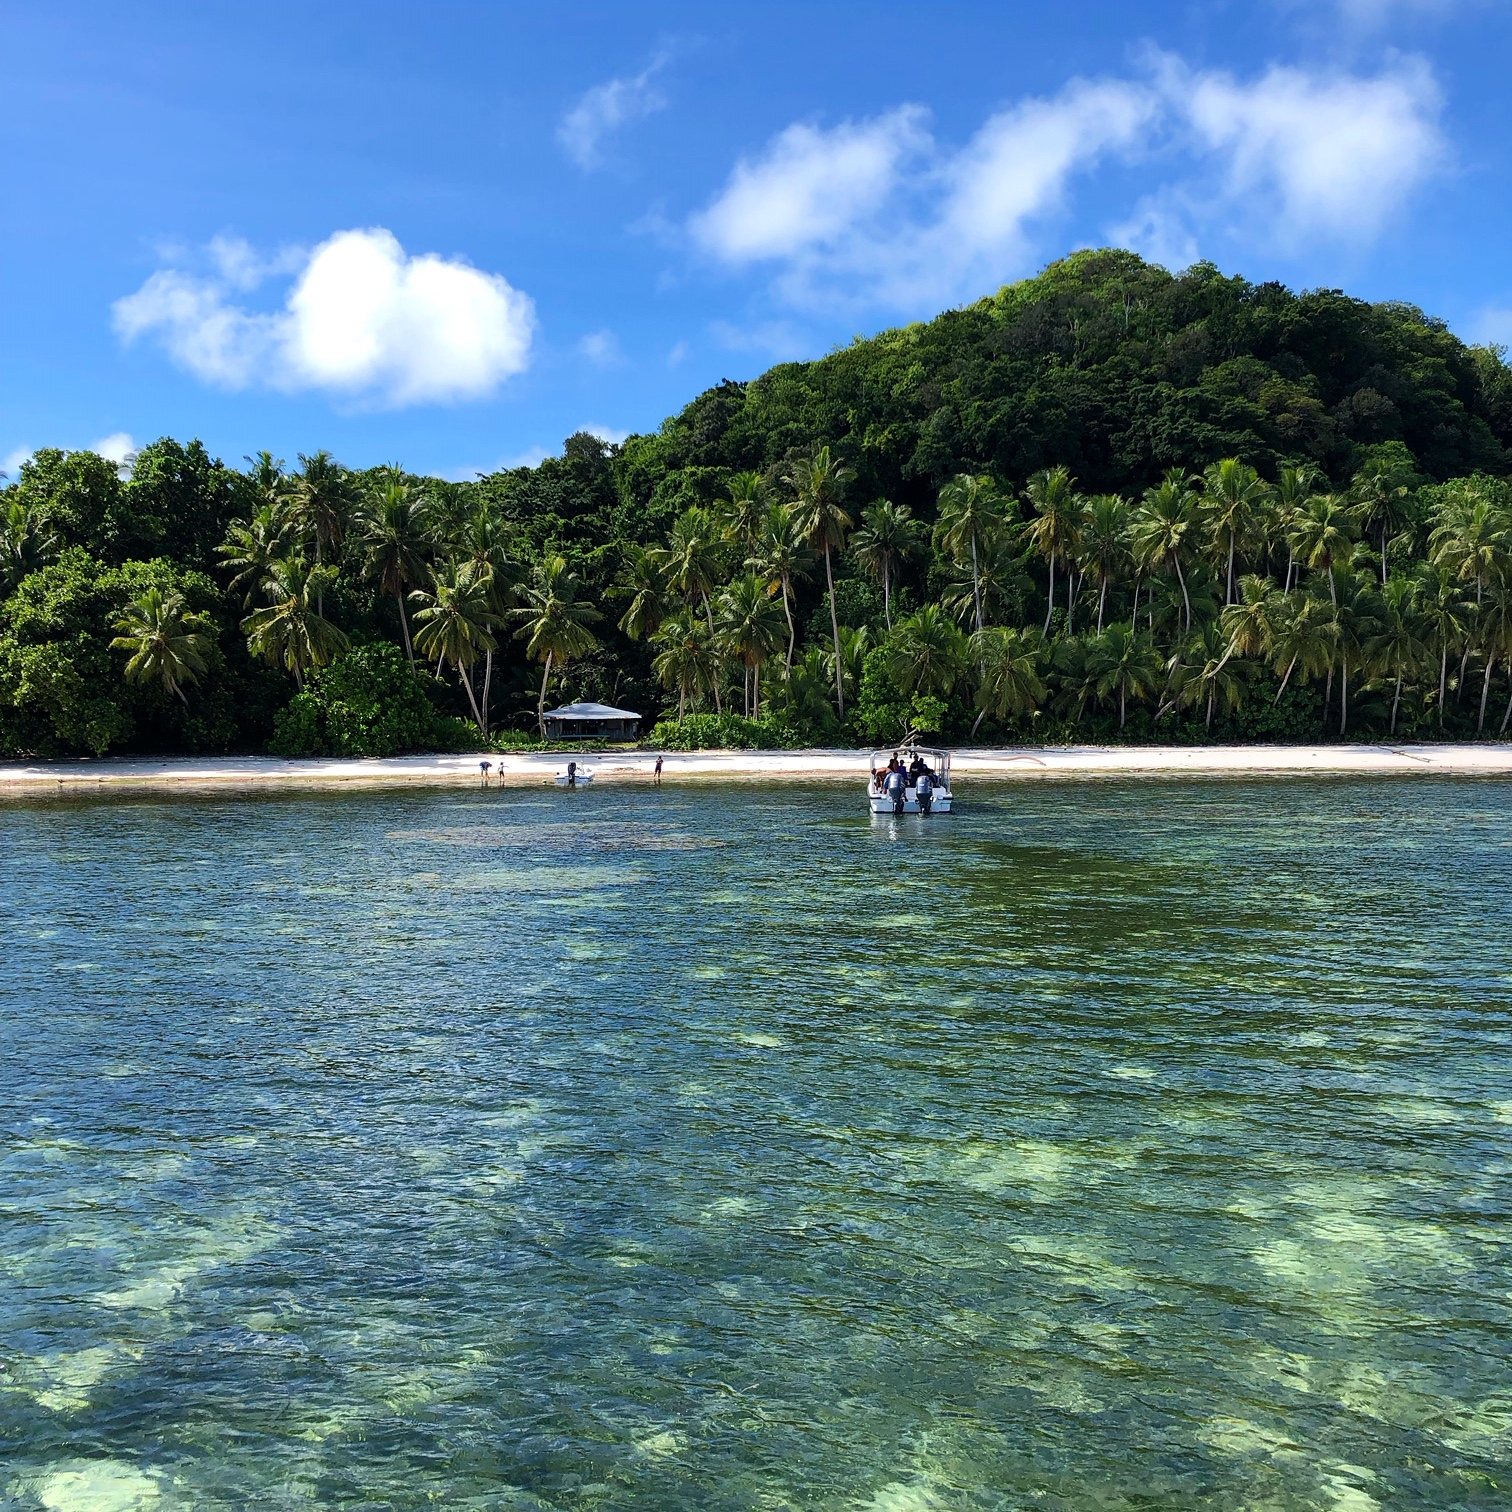 The people of Palau have been working to stop plastic pollution from harming their local environment for more than 10 years. Photo by Wayne Sentman.